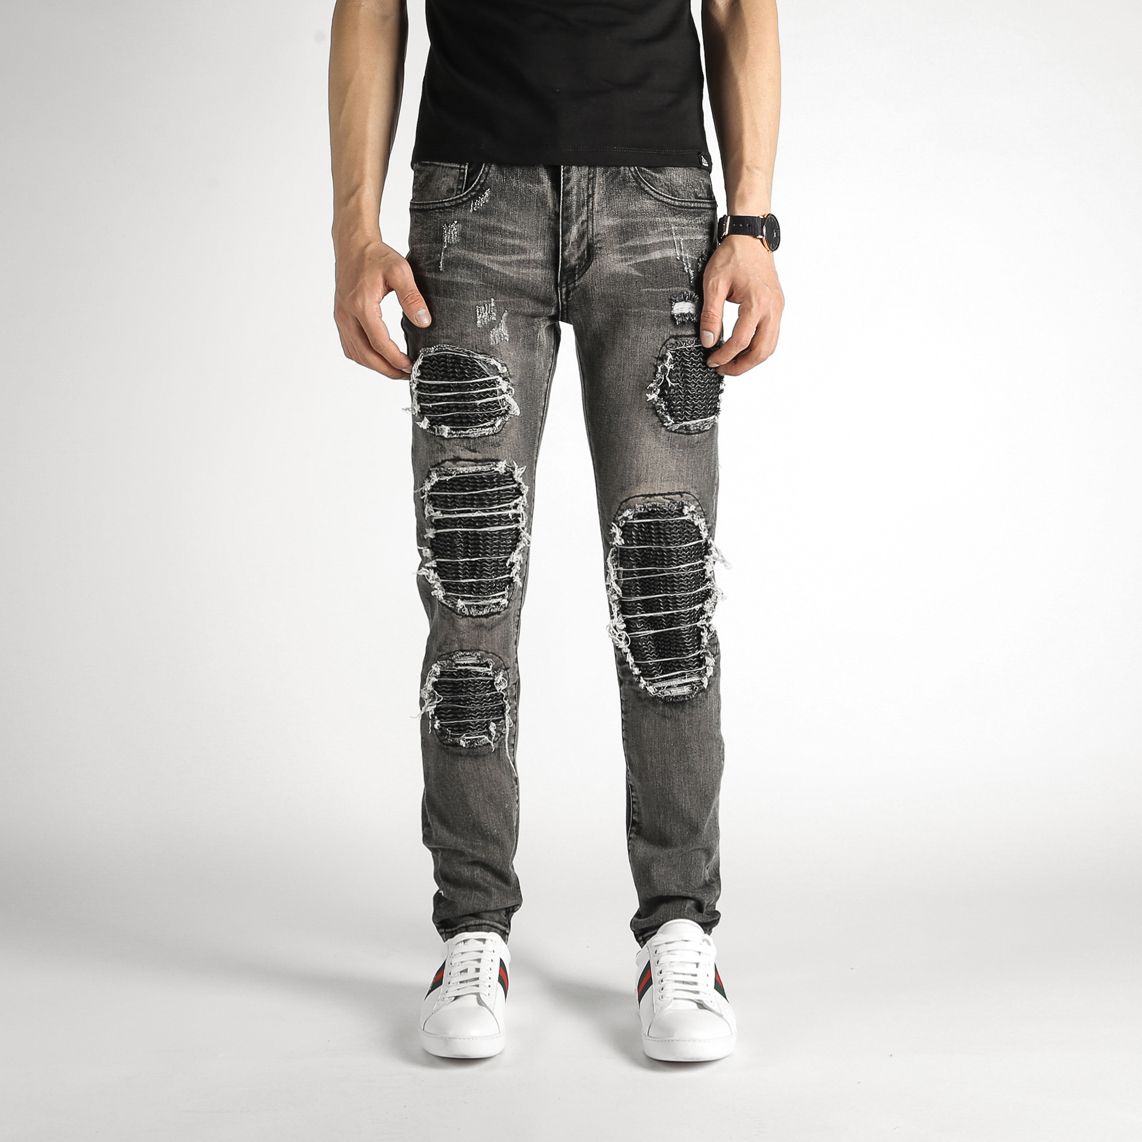 High Quality Fashion Jeans Men Distressed Slim Fit Skinny Jeans Casual Biker Jeans Men Denim Ripped Bermuda Jeans Masculina summer style men jeans blue color denim destroyed ripped jeans men high quality skinny slim fit biker jeans casual leisure pants